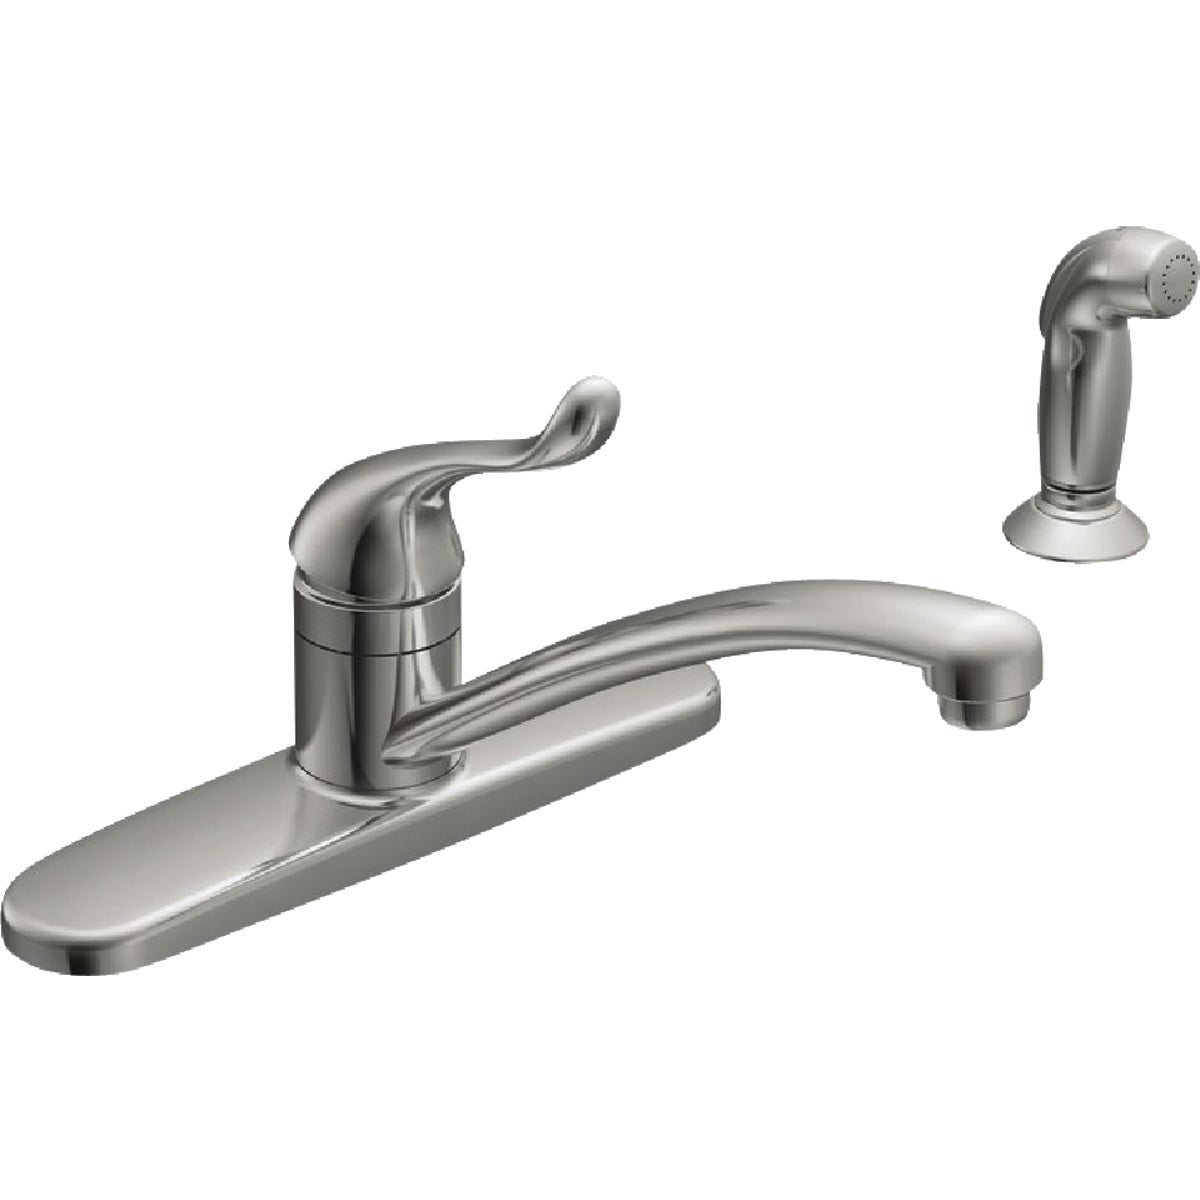 1H CHR KIT FAUCET W/SPRY - CA87530 by Moen Inc